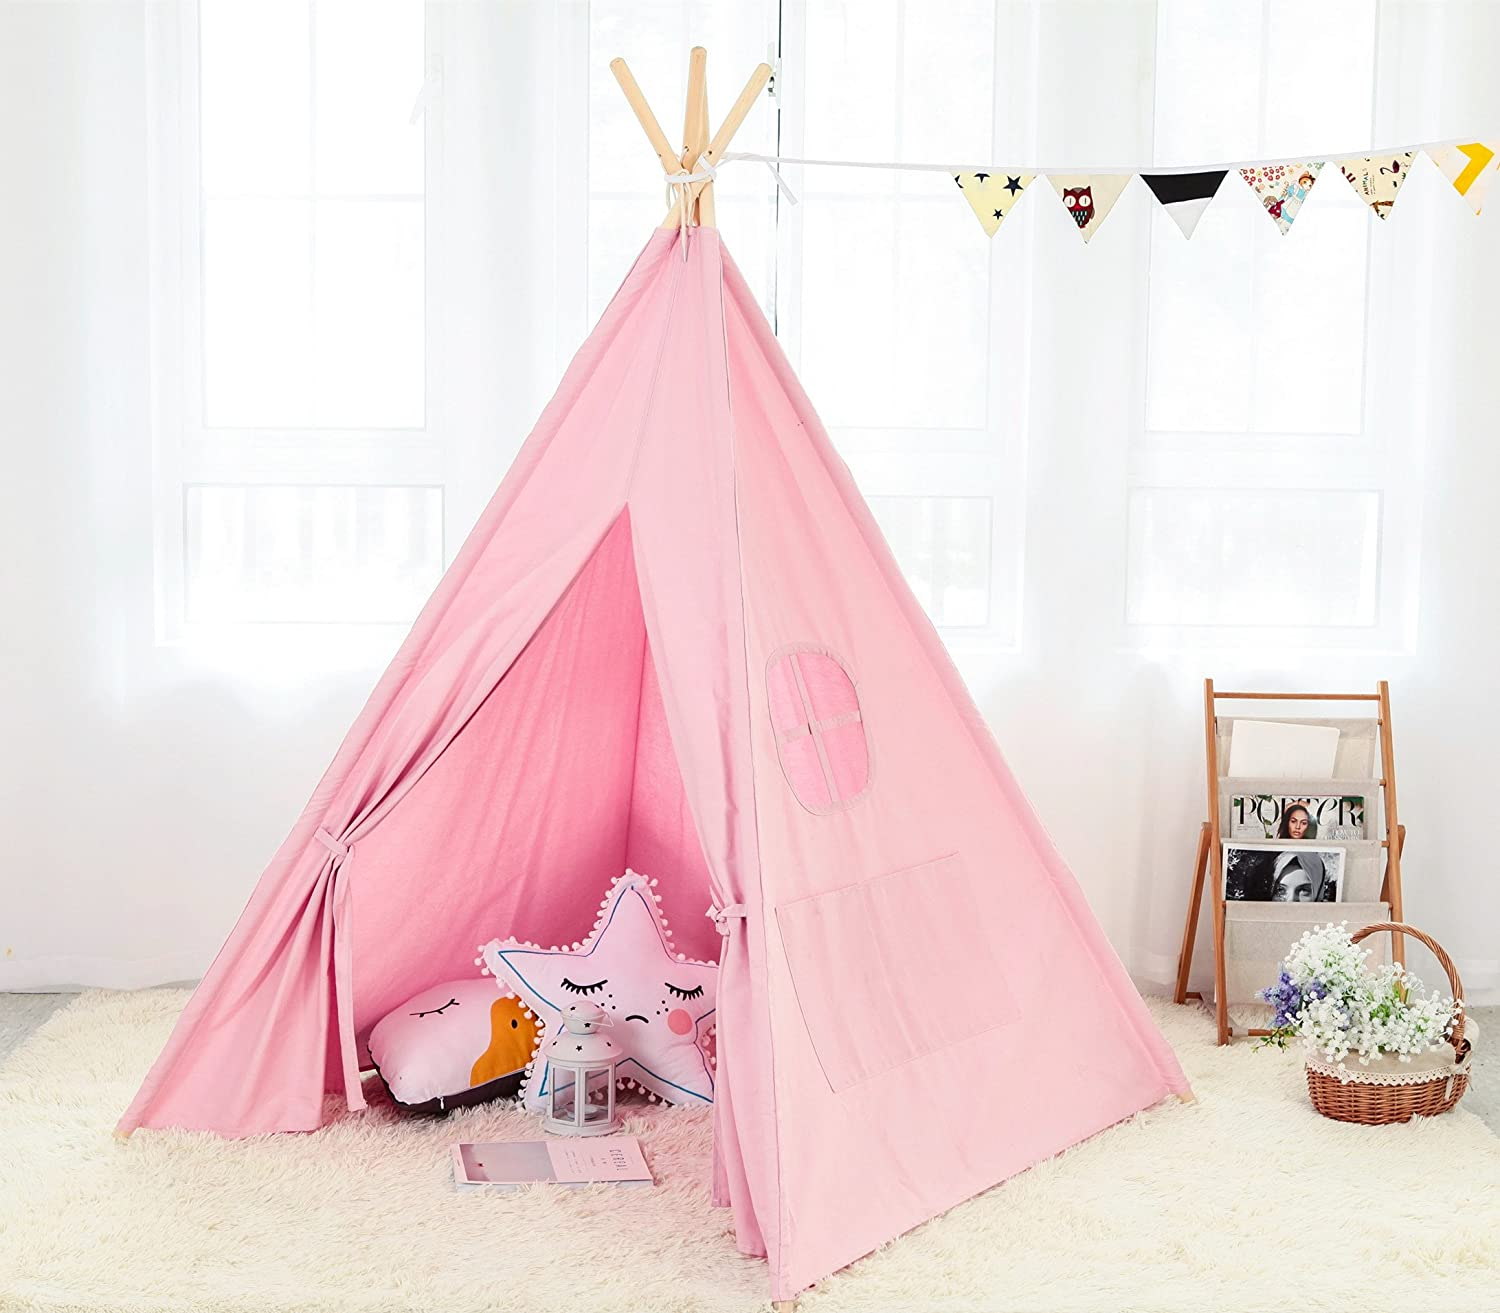 Steegic Outdoor and Indoor Great Canvas Indian Teepee Playhouse for Kids Pink